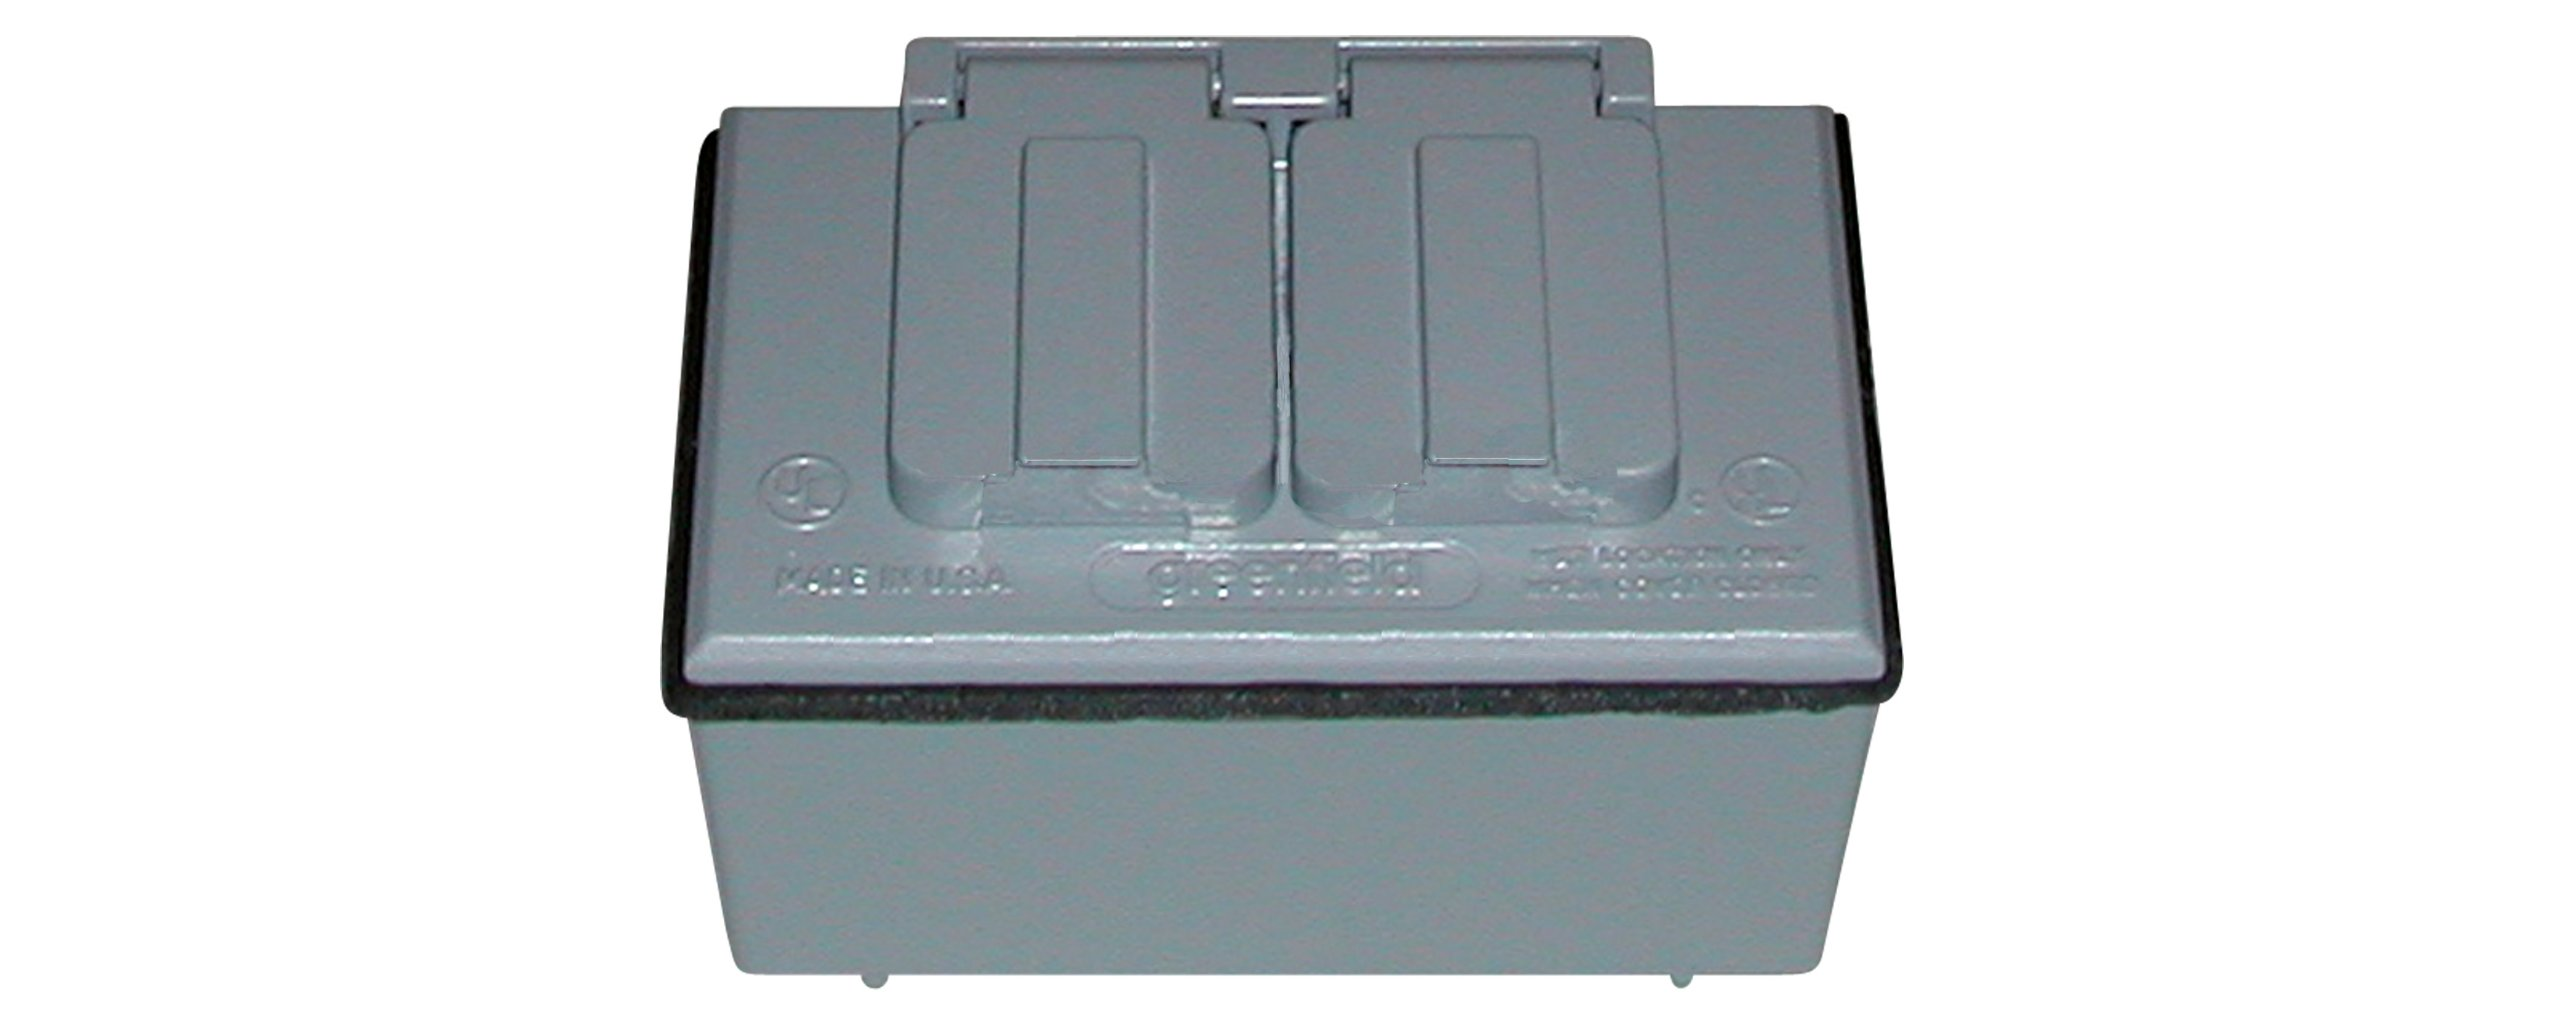 Made in USA Weatherproof Electrical Outlet Box, Box Cover & Duplex Outlet Kit Gray by Greenfield